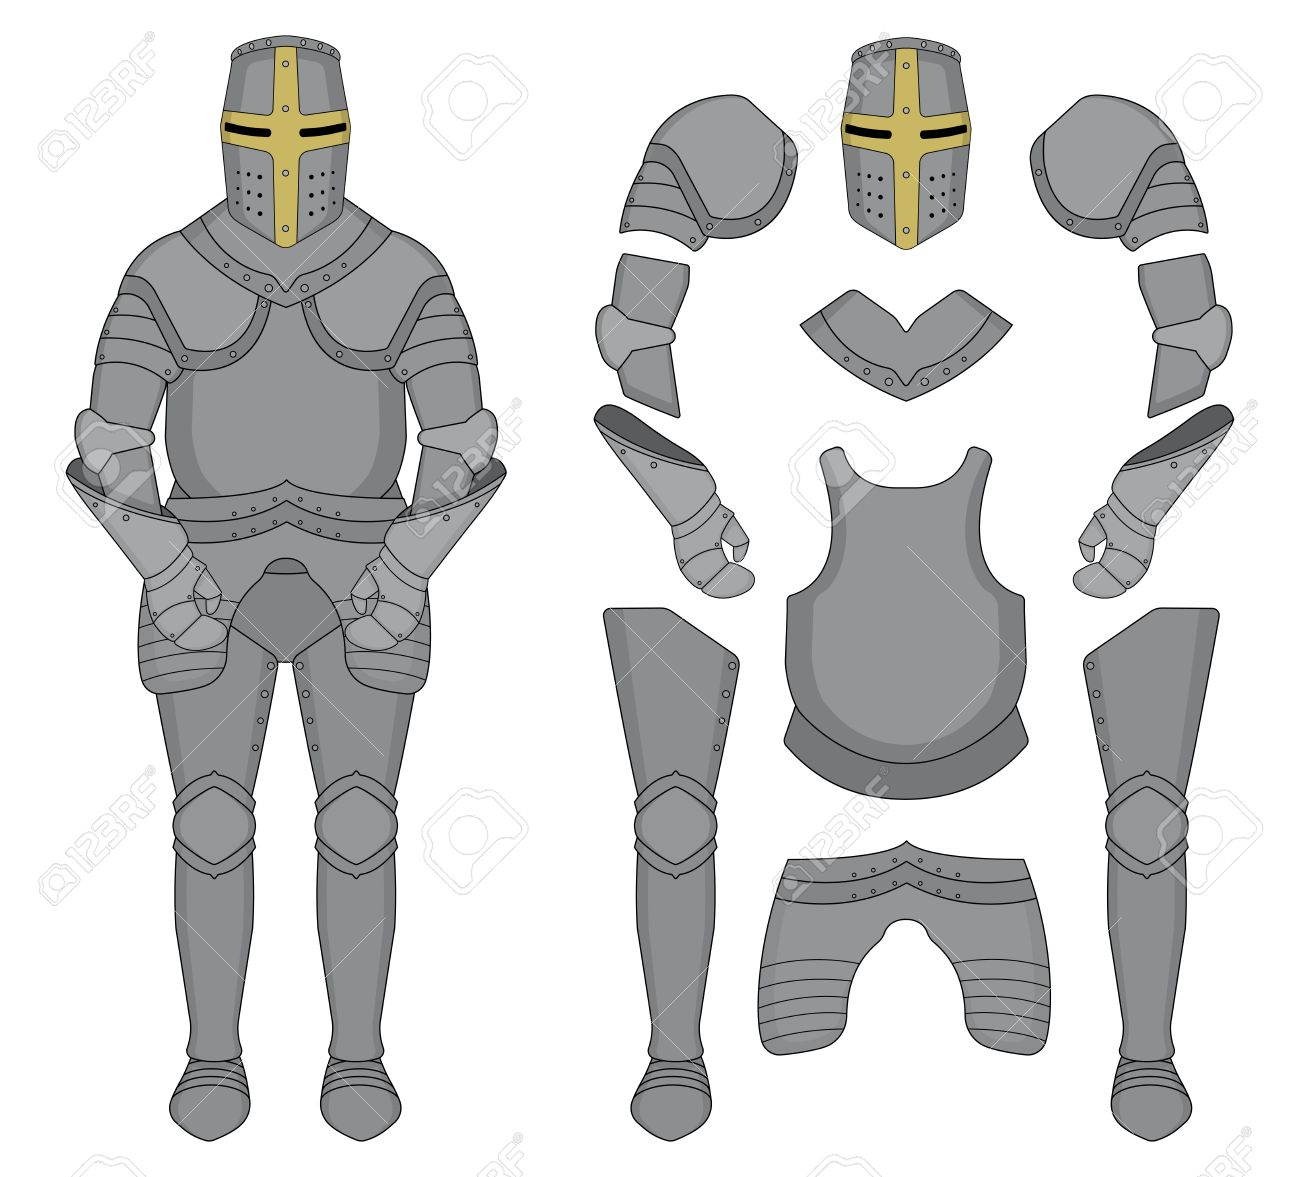 Knight armor clipart graphic library library Medieval templar knight armor set » Clipart Station graphic library library